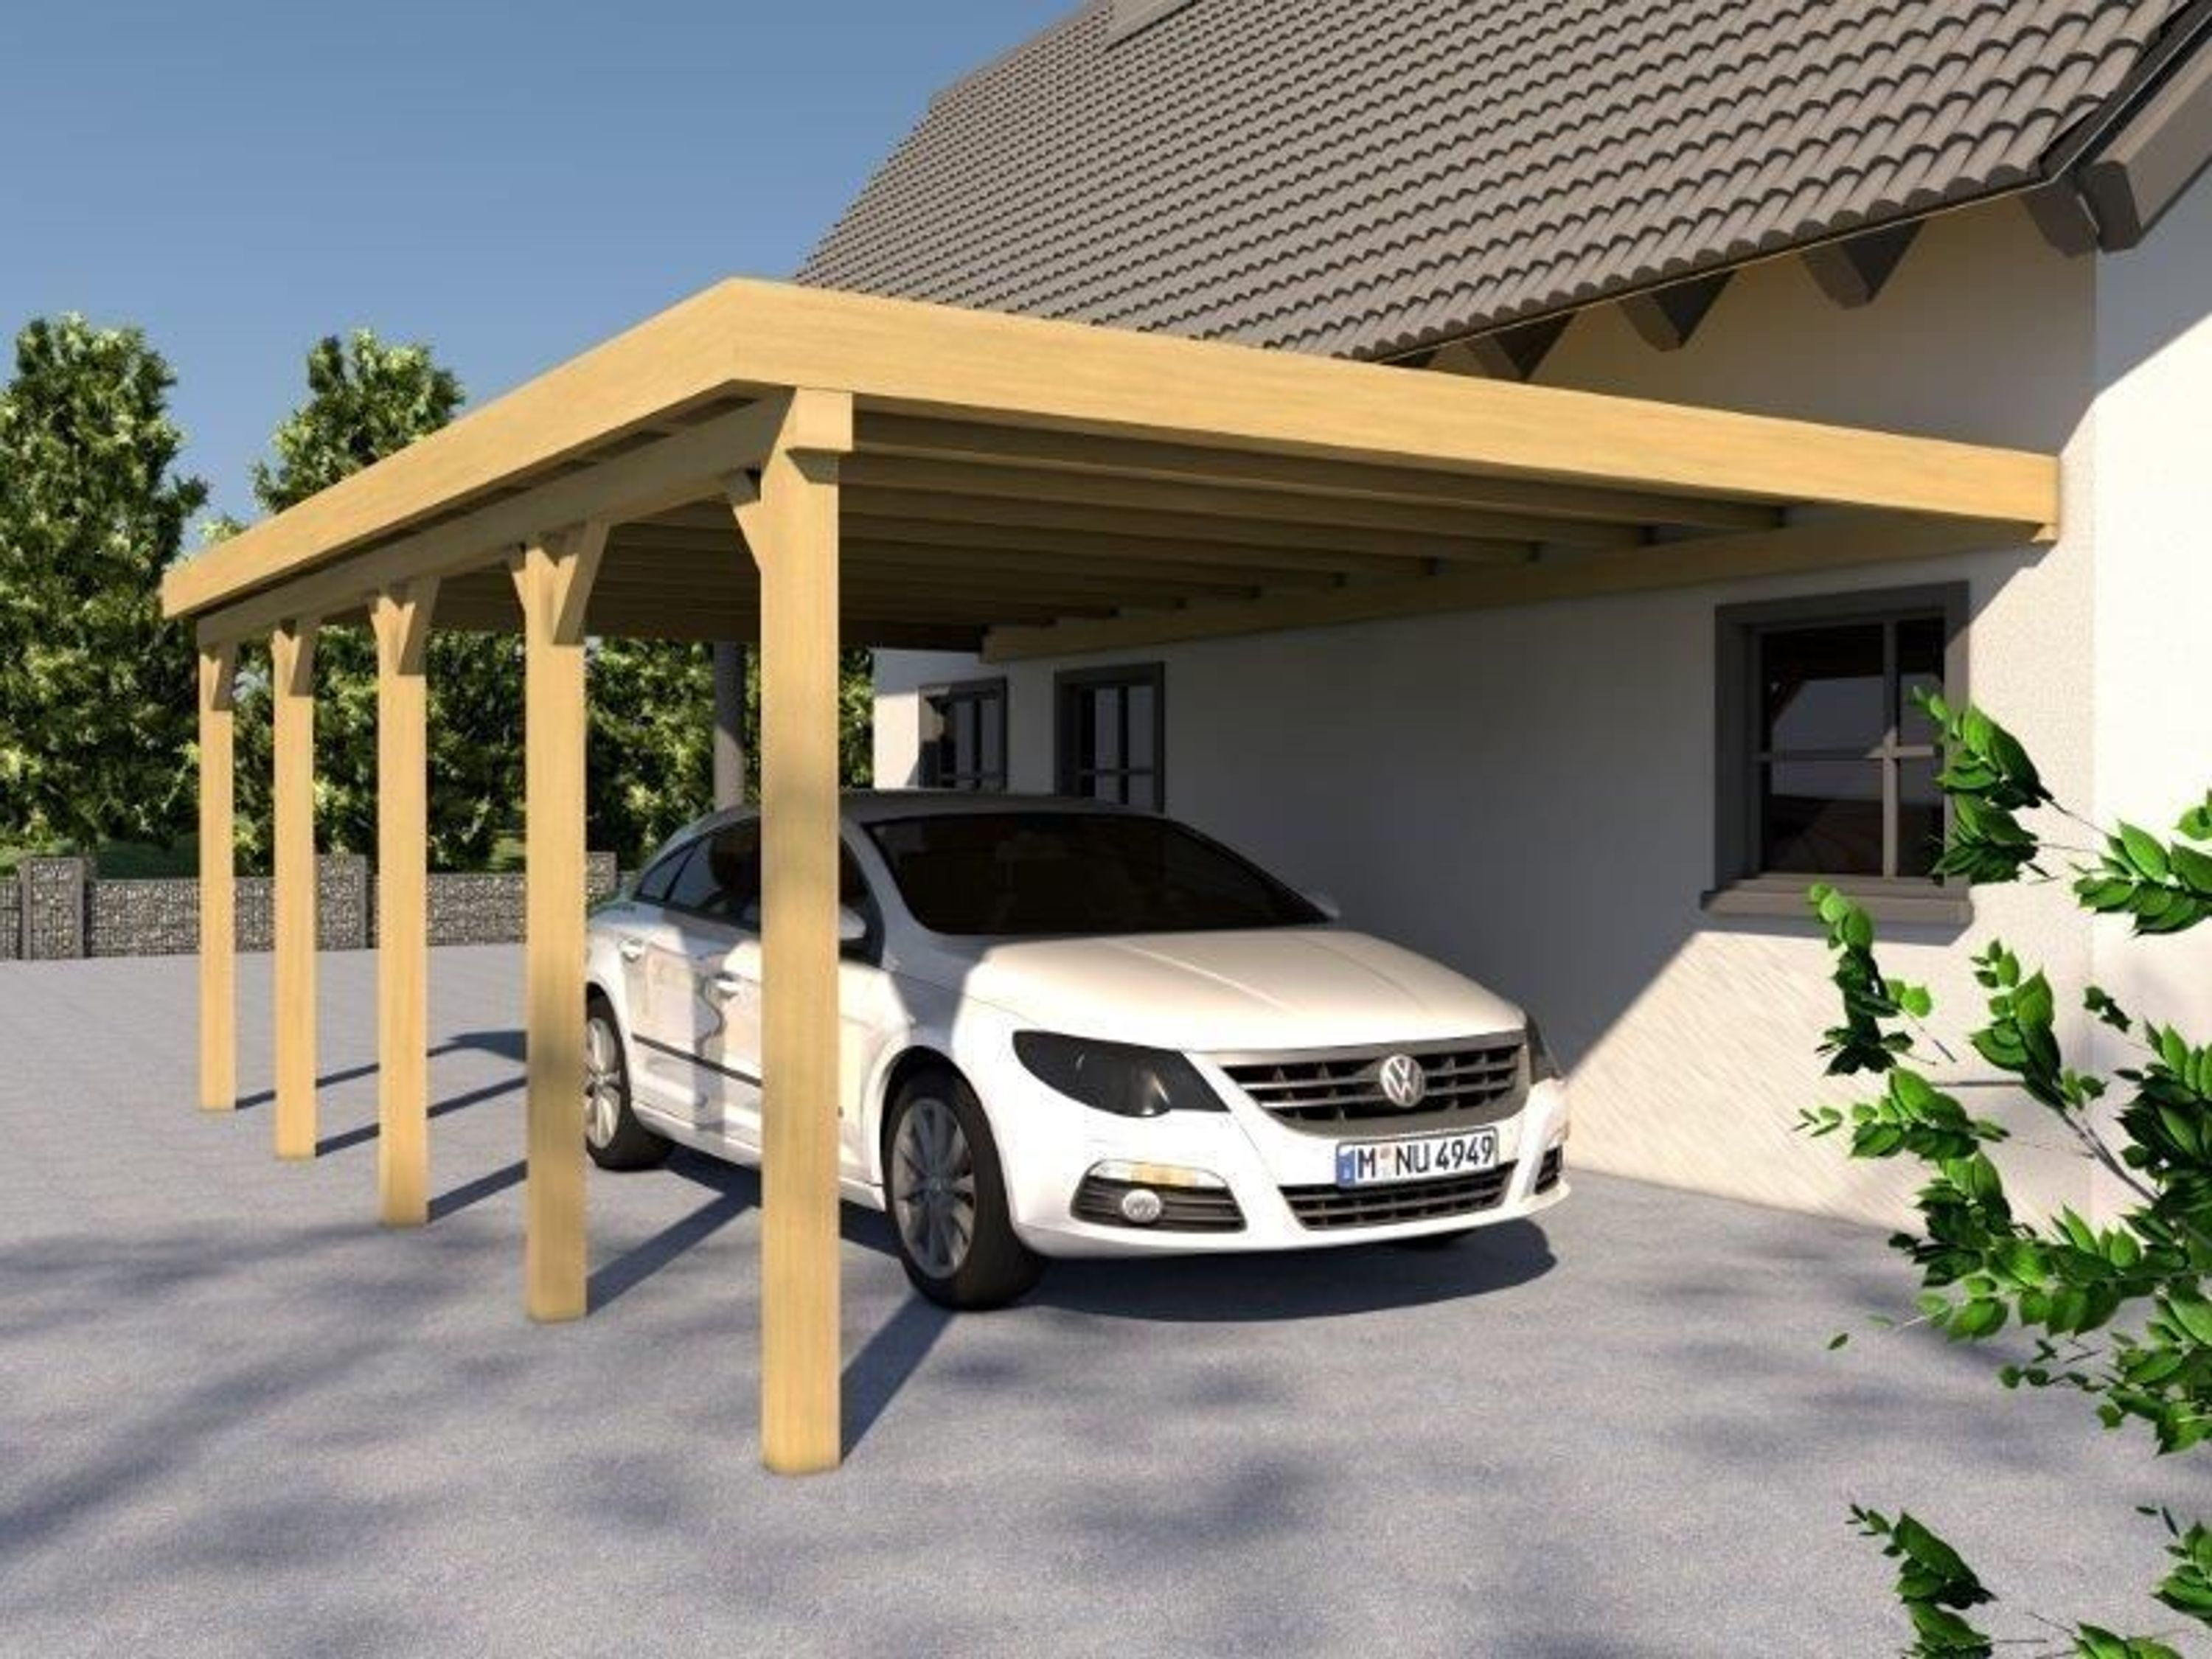 anlehncarport carport eifel vii 400x800cm bausatz anbaucarport dacheindeckung kaufen bei. Black Bedroom Furniture Sets. Home Design Ideas